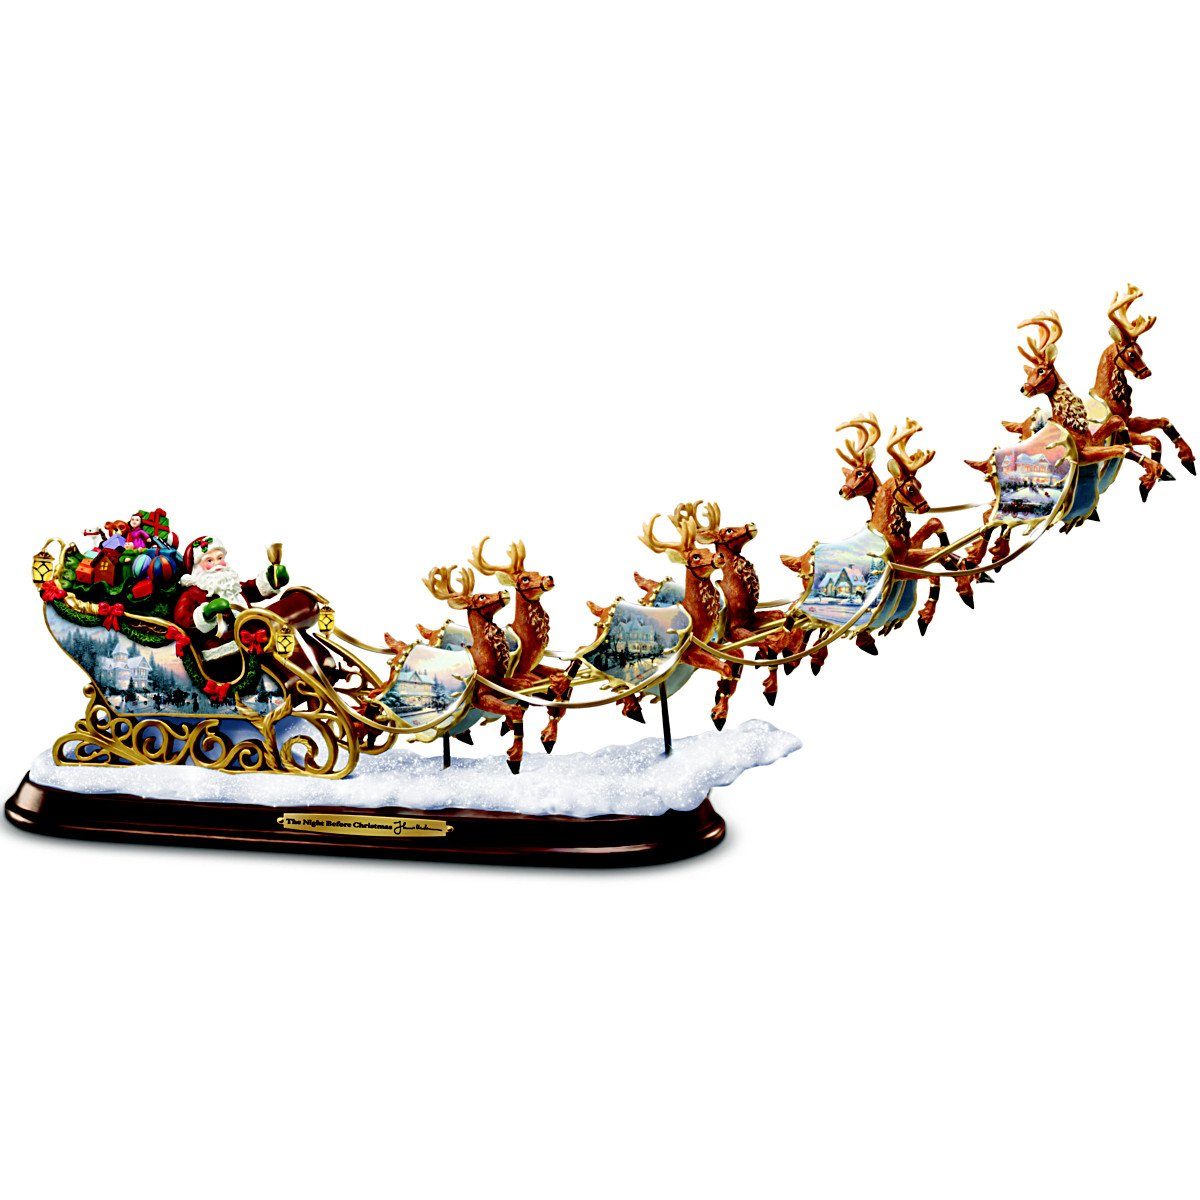 Thomas Kinkade Santa's Sleigh Illuminated Figurine: The Night Before Christmas